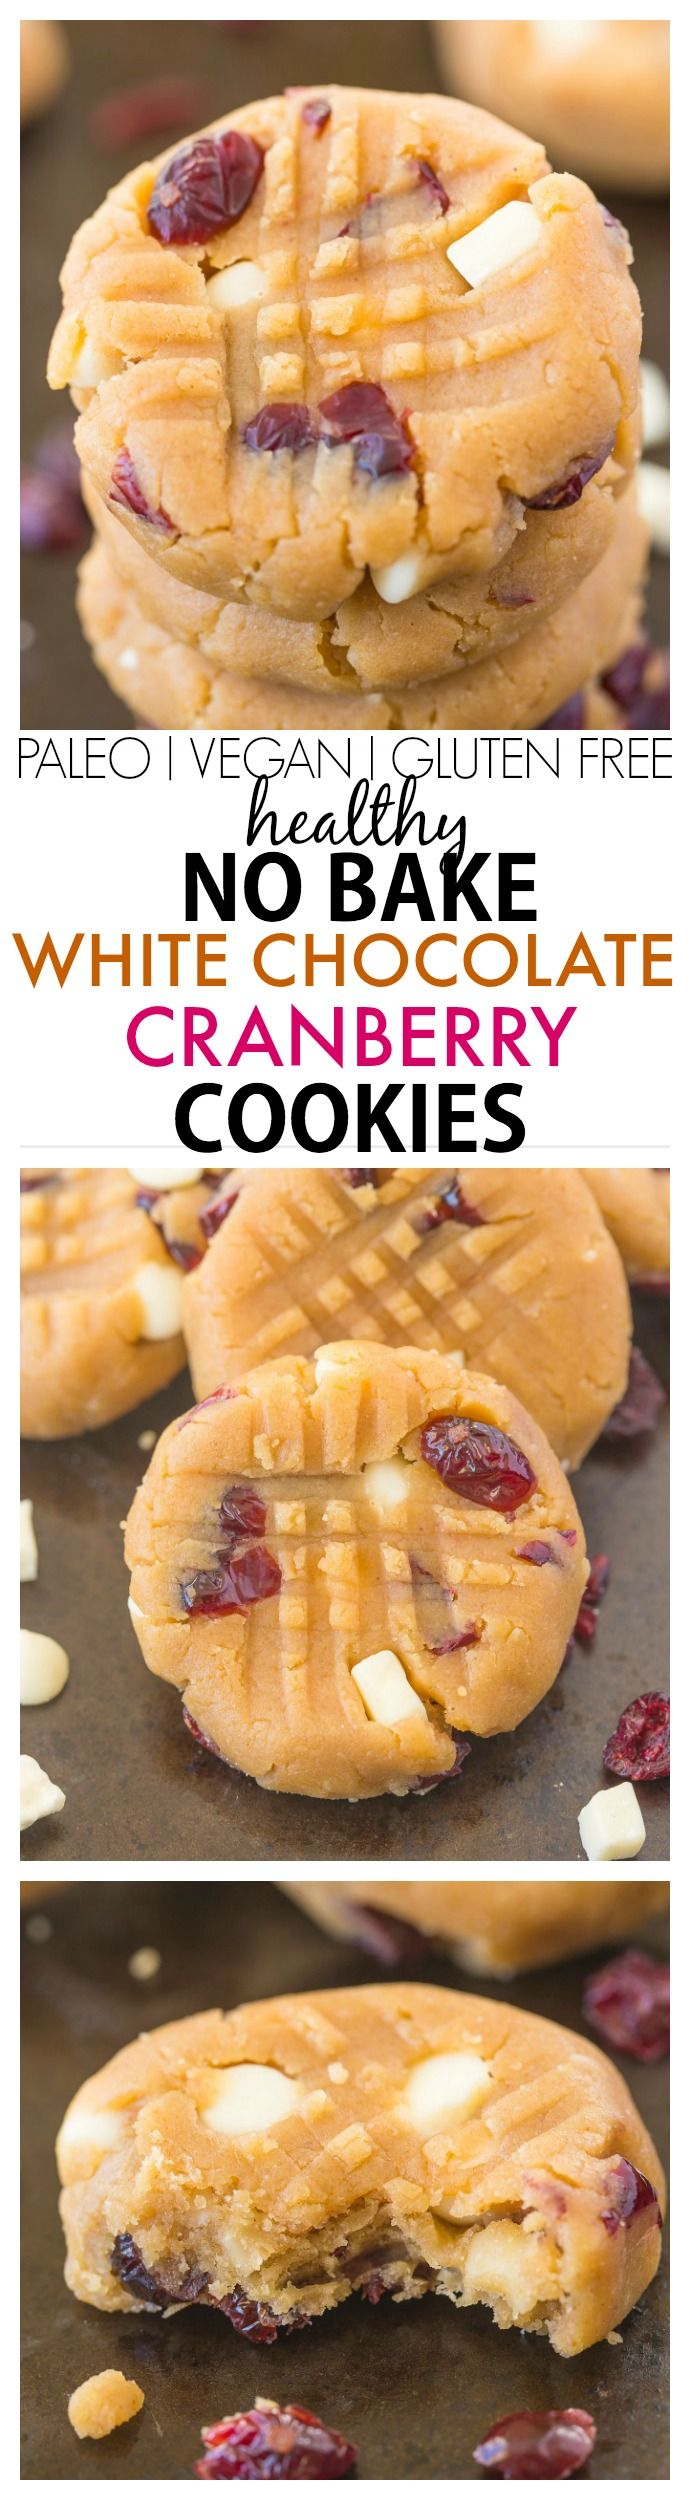 Healthy No Bake White Chocolate Cranberry Cookies- NO butter, oil, sugar or white flour but SO delicious- A quick, easy and delicious snack or healthy dessert recipe! Perfect for Christmas + the festive season too- DIY! {vegan, gluten free, paleo option}